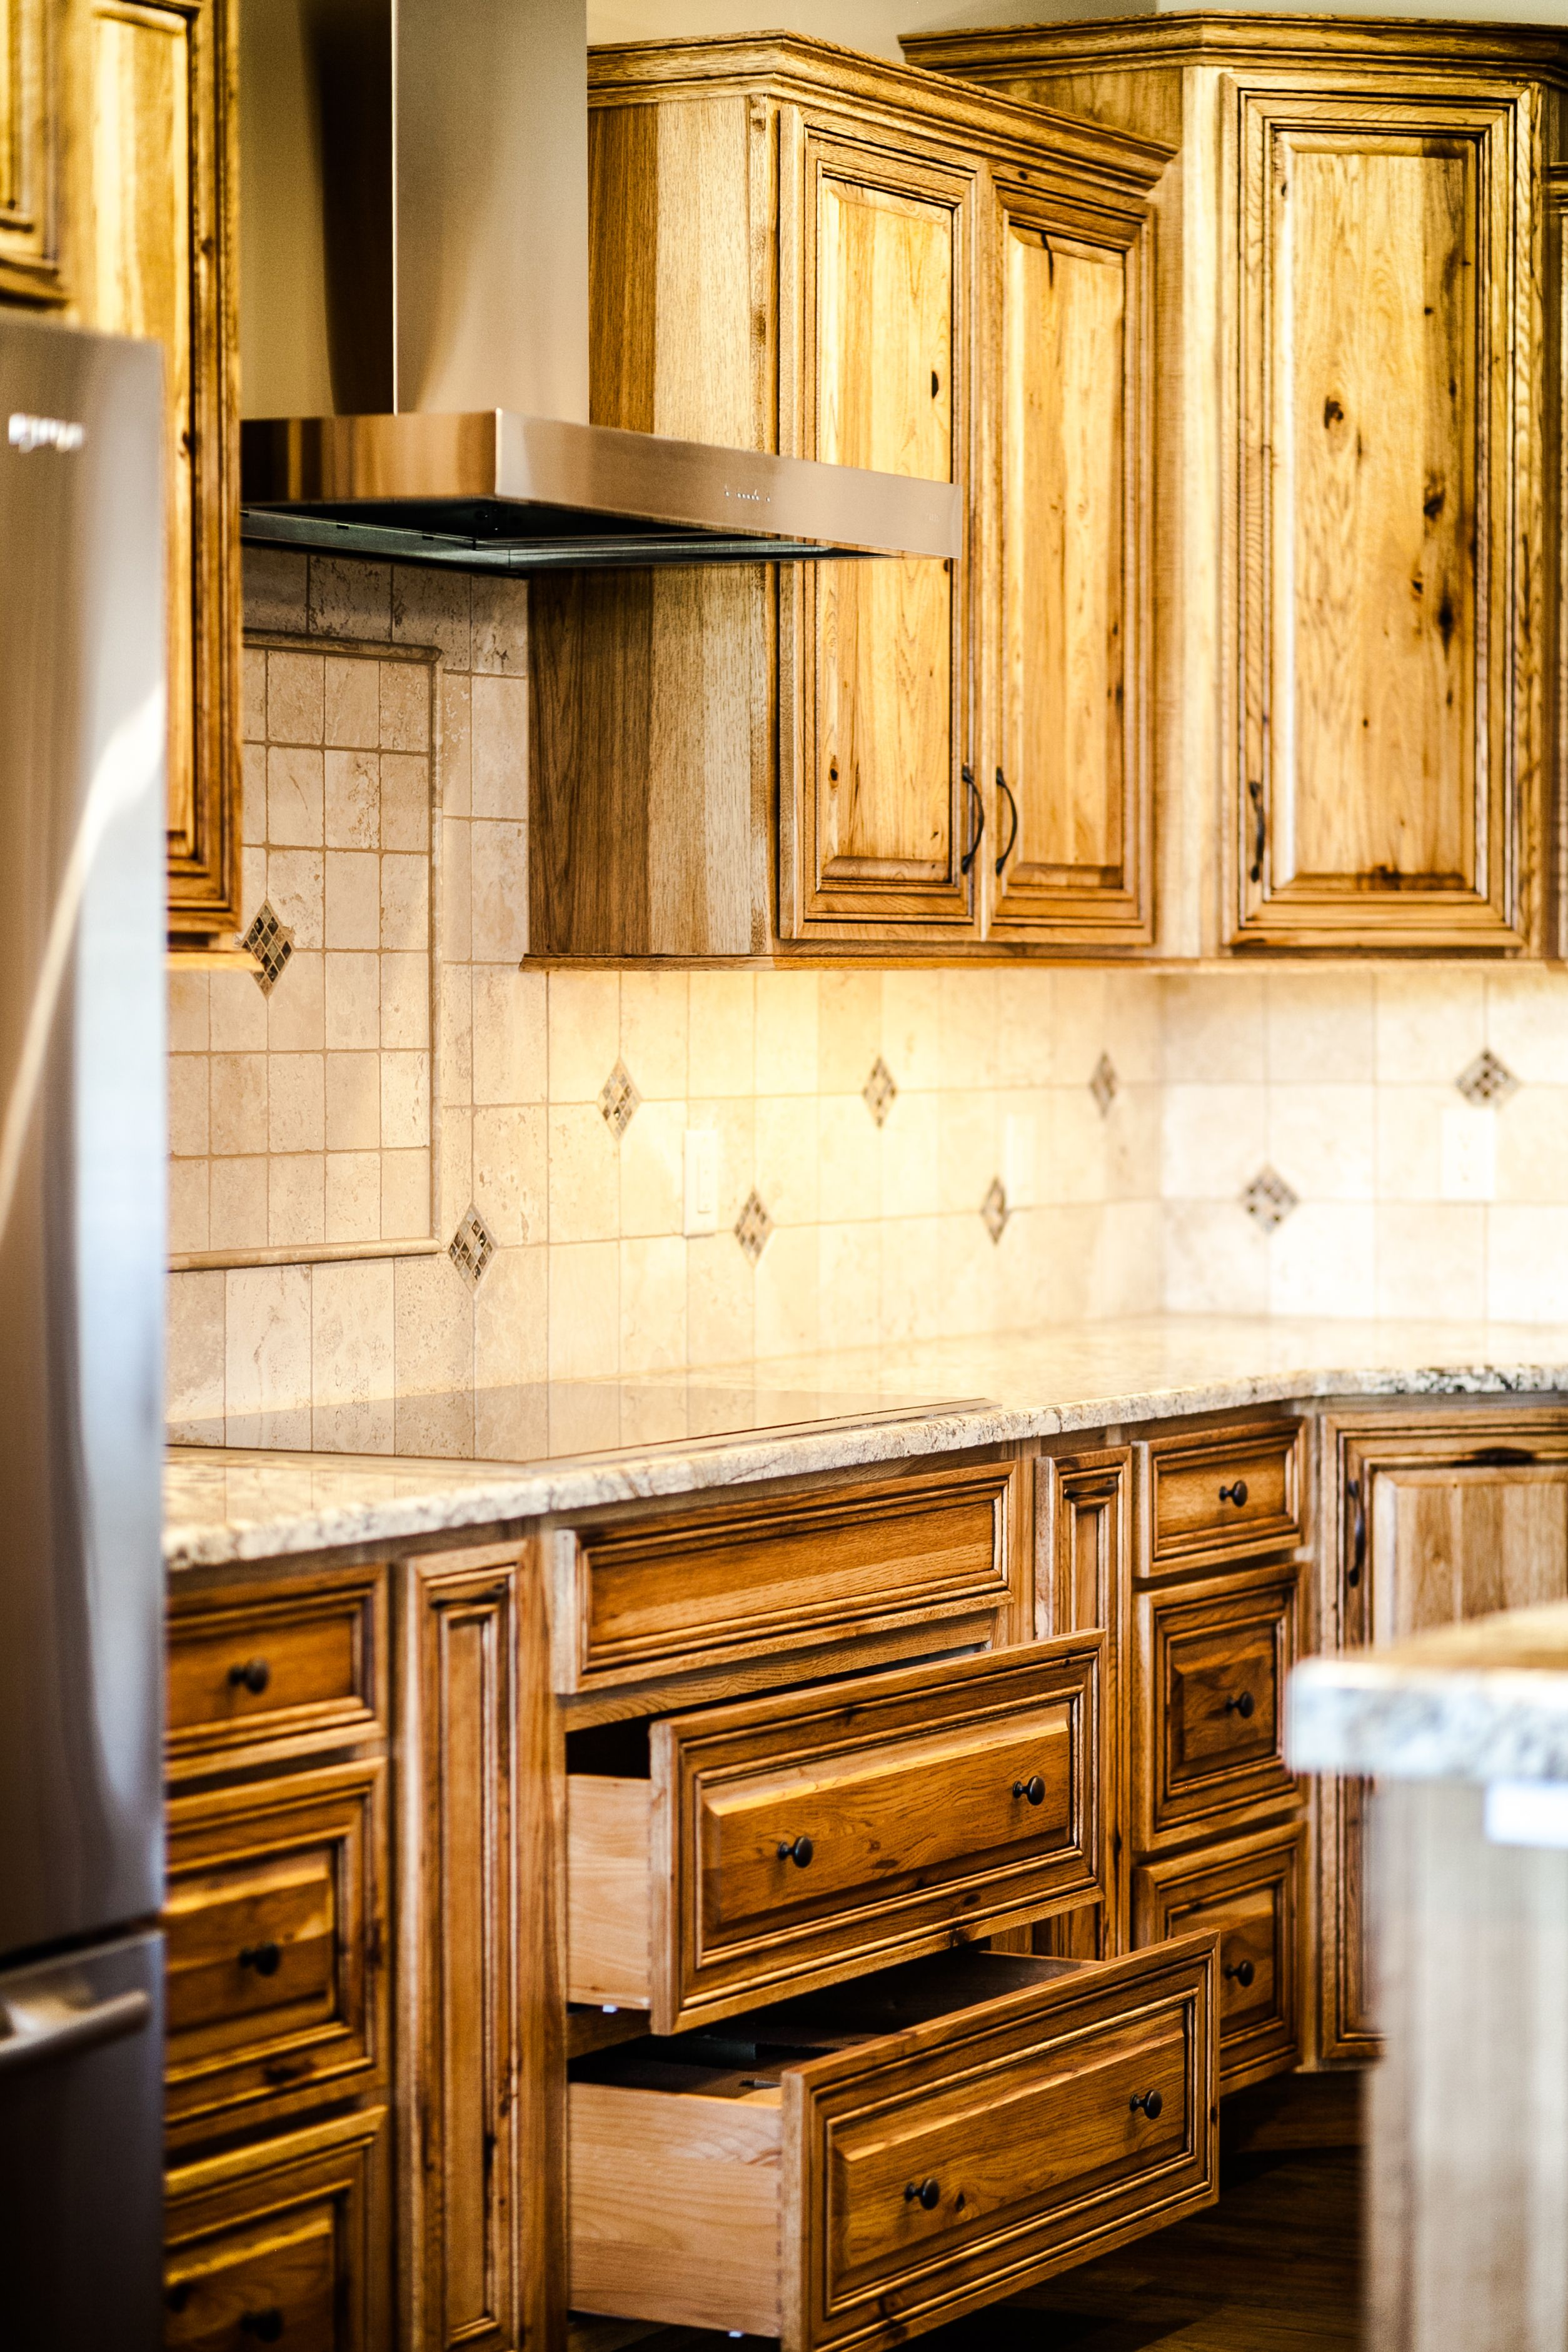 Pin By 84 Lumber On Grand Junction Co Kitchen Designs Kitchen Design Kitchen Kitchen Cabinets